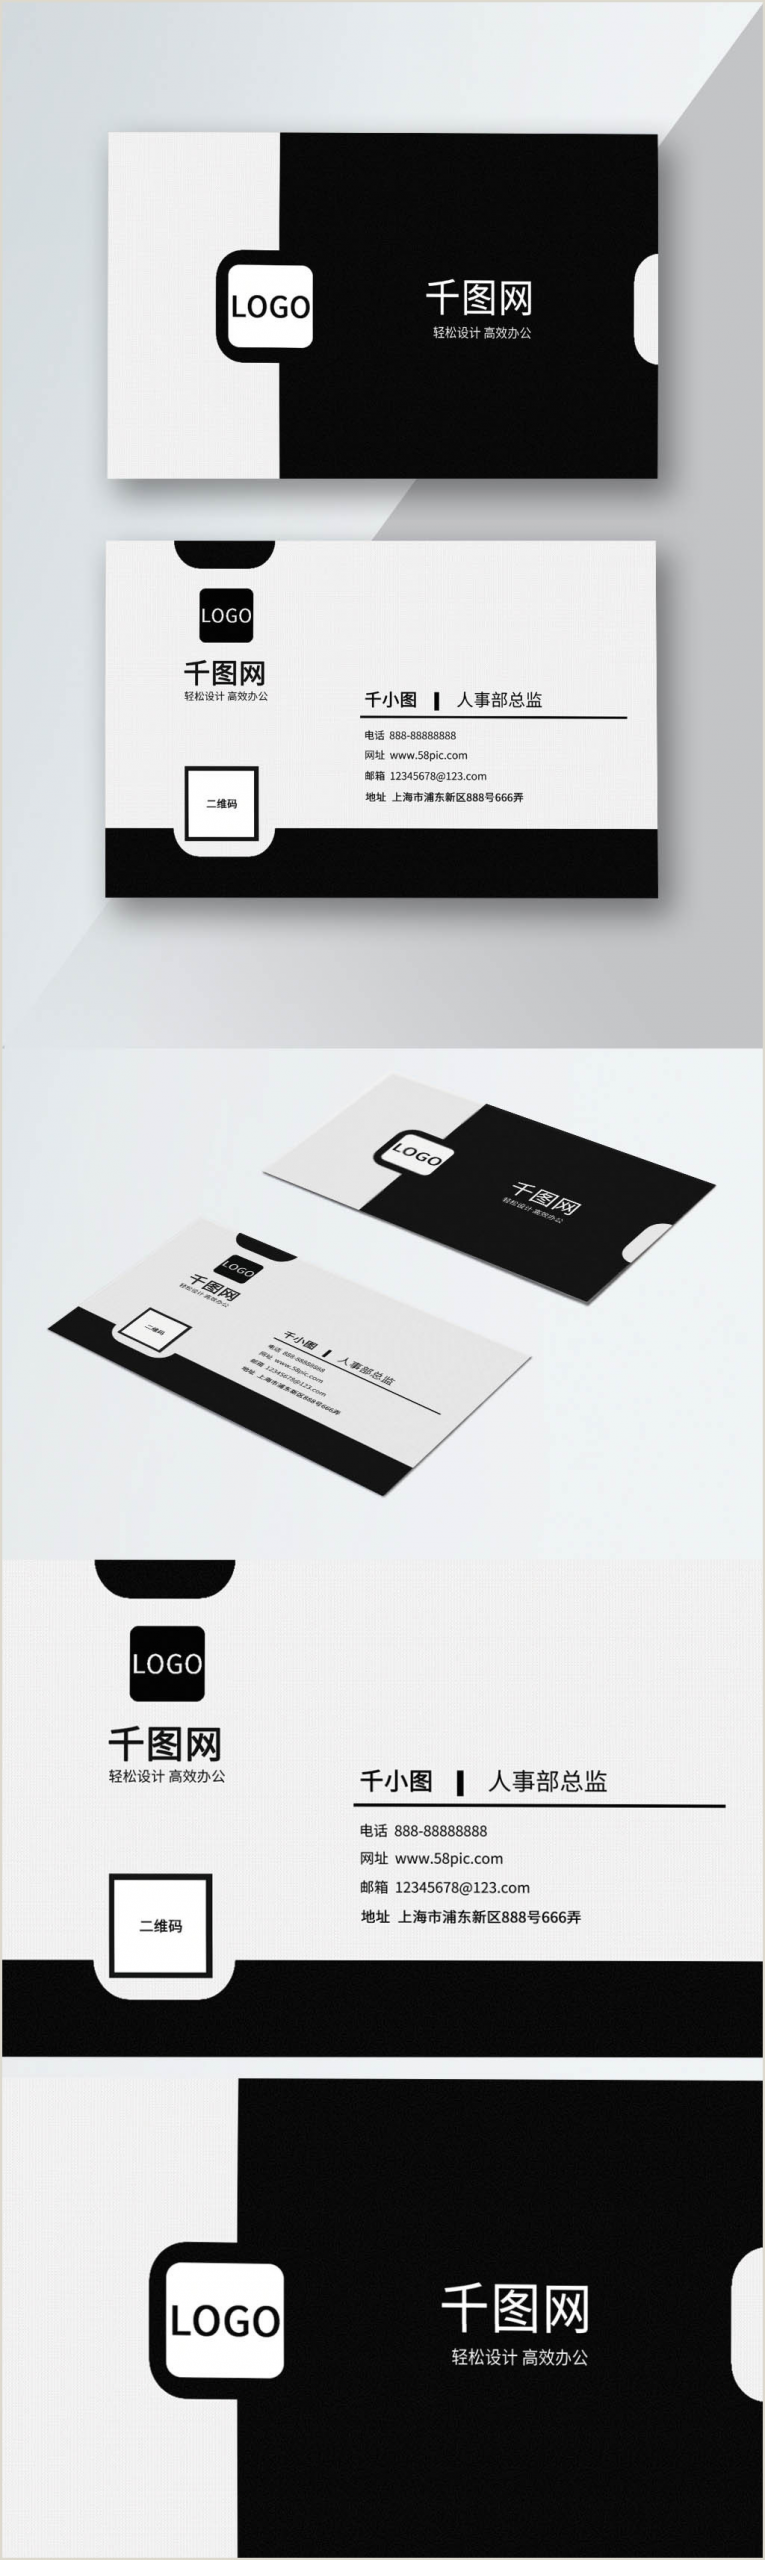 Business Card White Black And White Business Senior Business Card With Qr Code